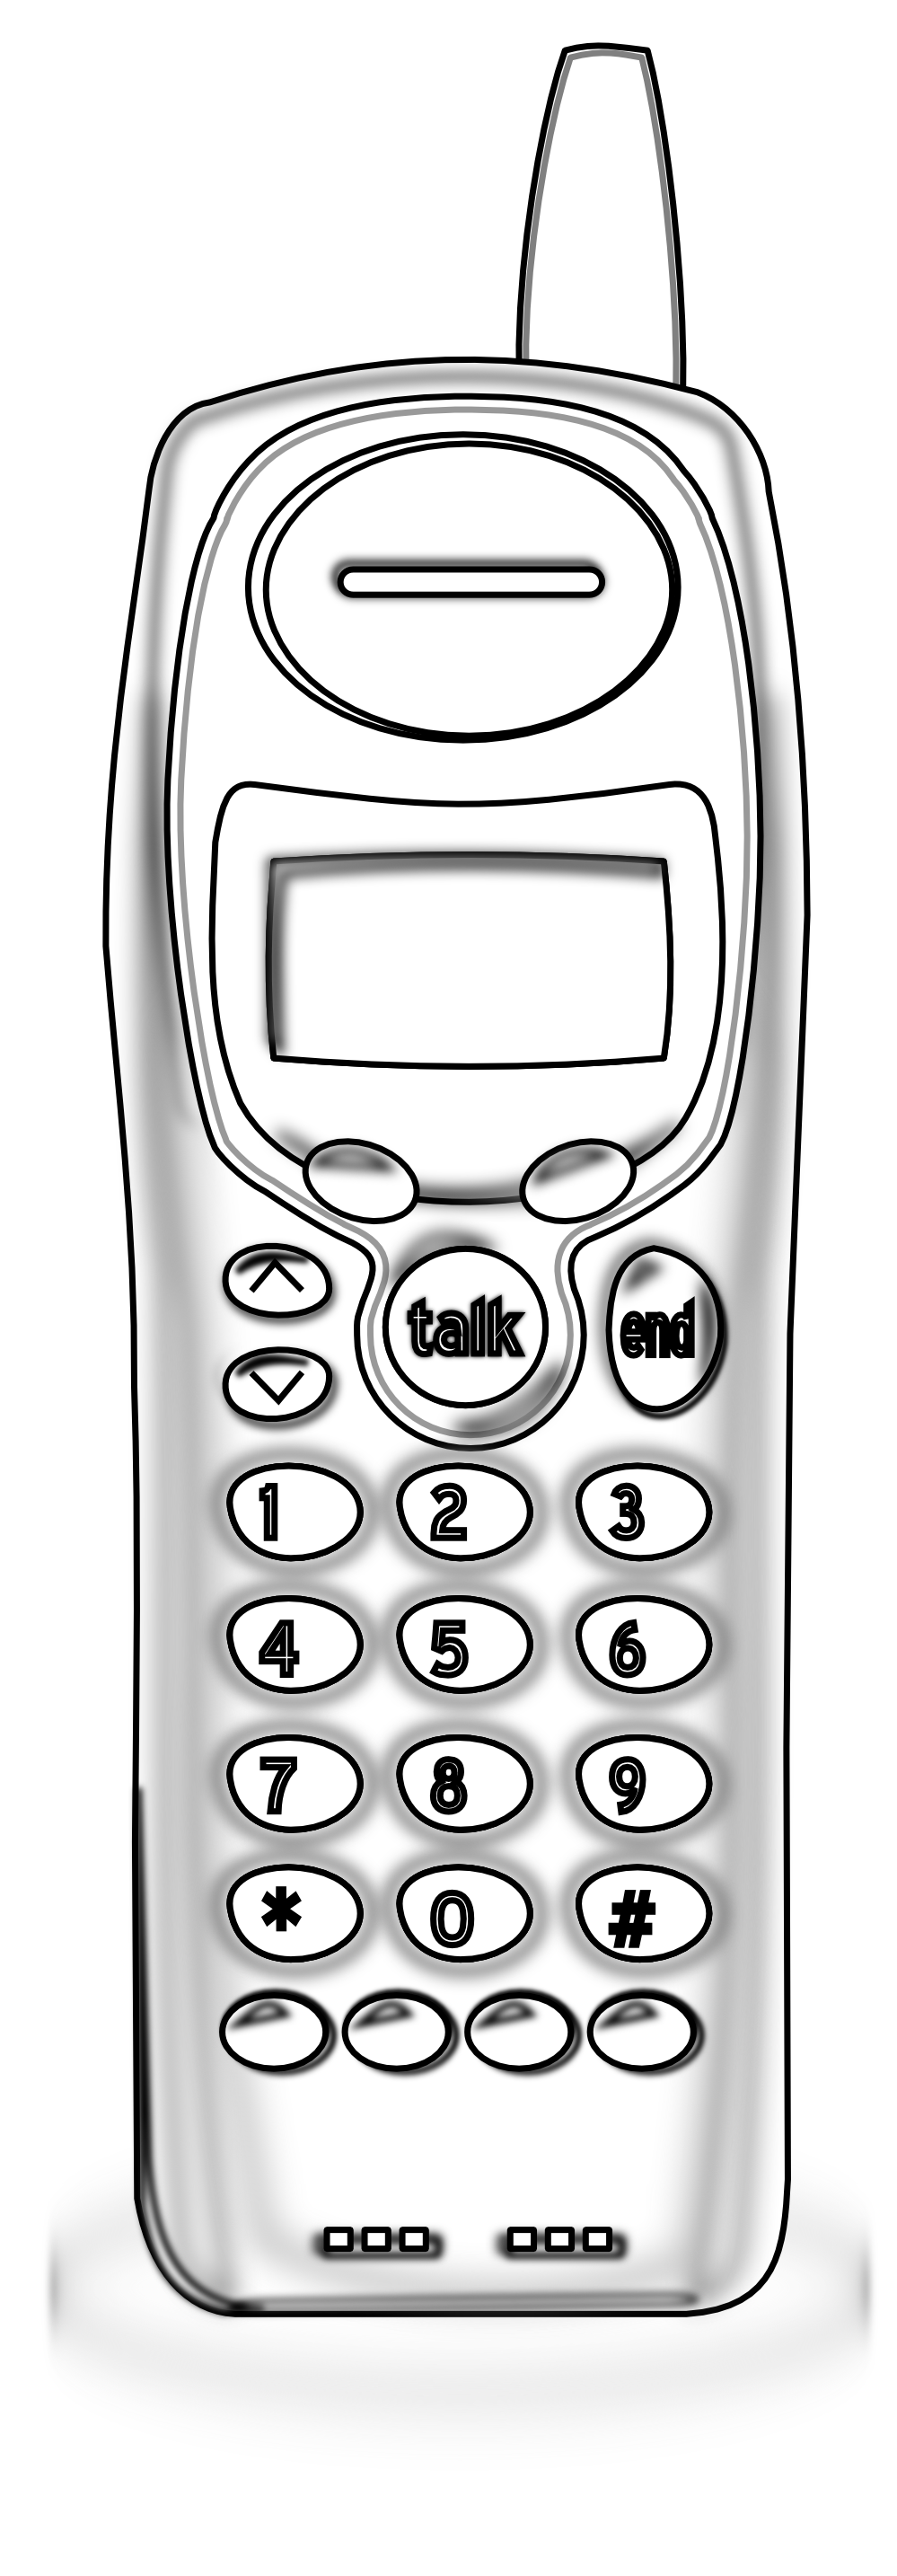 Clipartist net book cordless. Clipart telephone phone directory